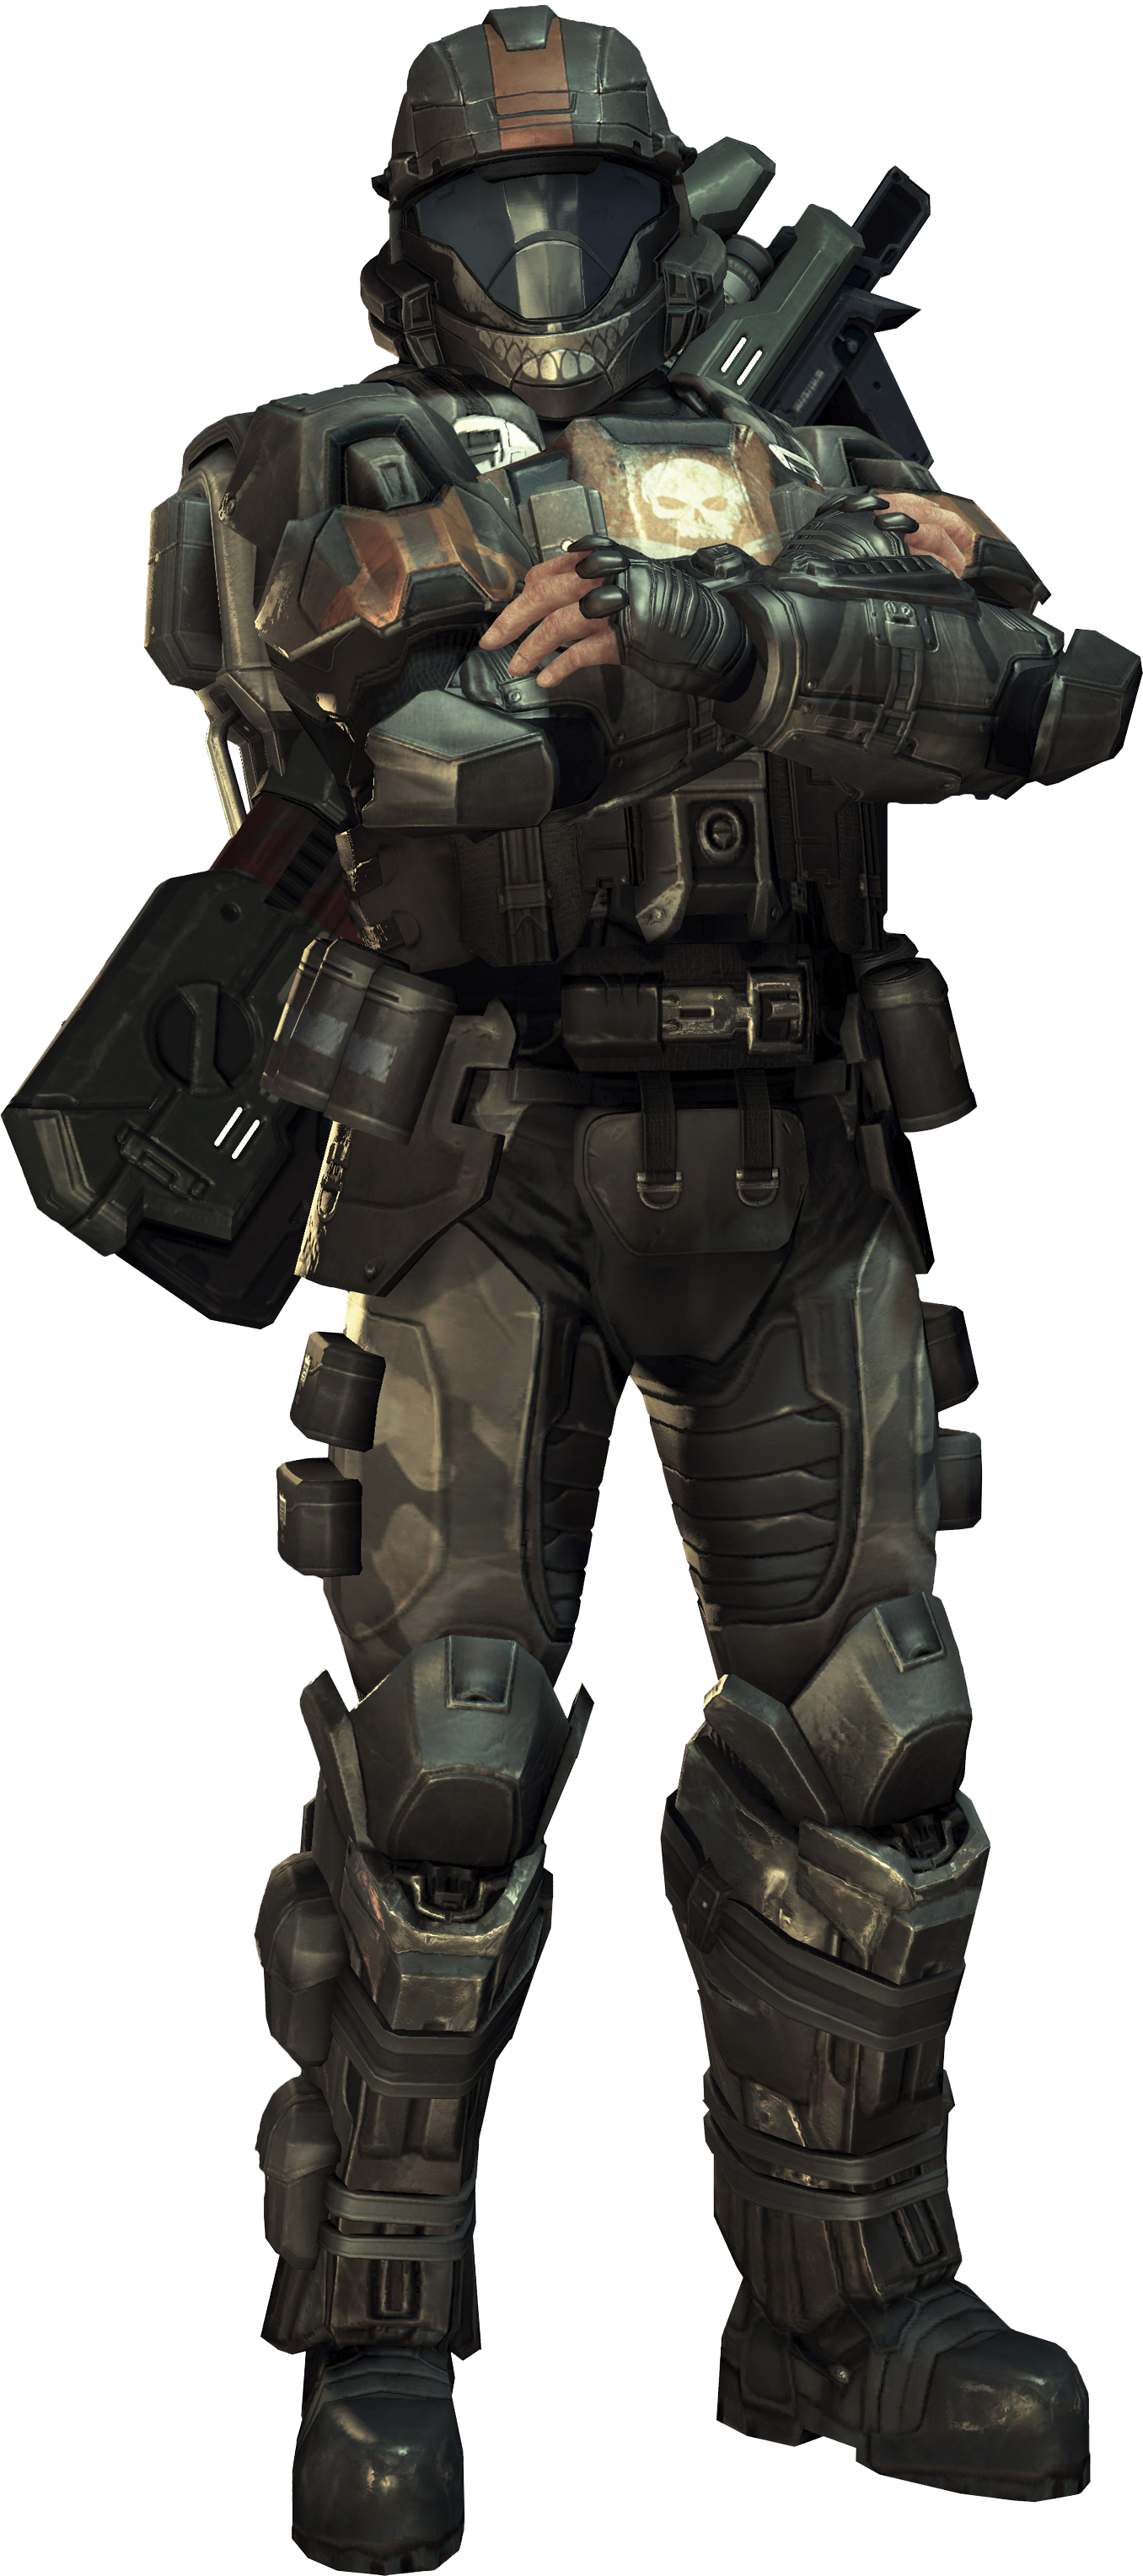 Halo 3 ODST Dutch | Halo: Art & Images Evolved | Pinterest ...